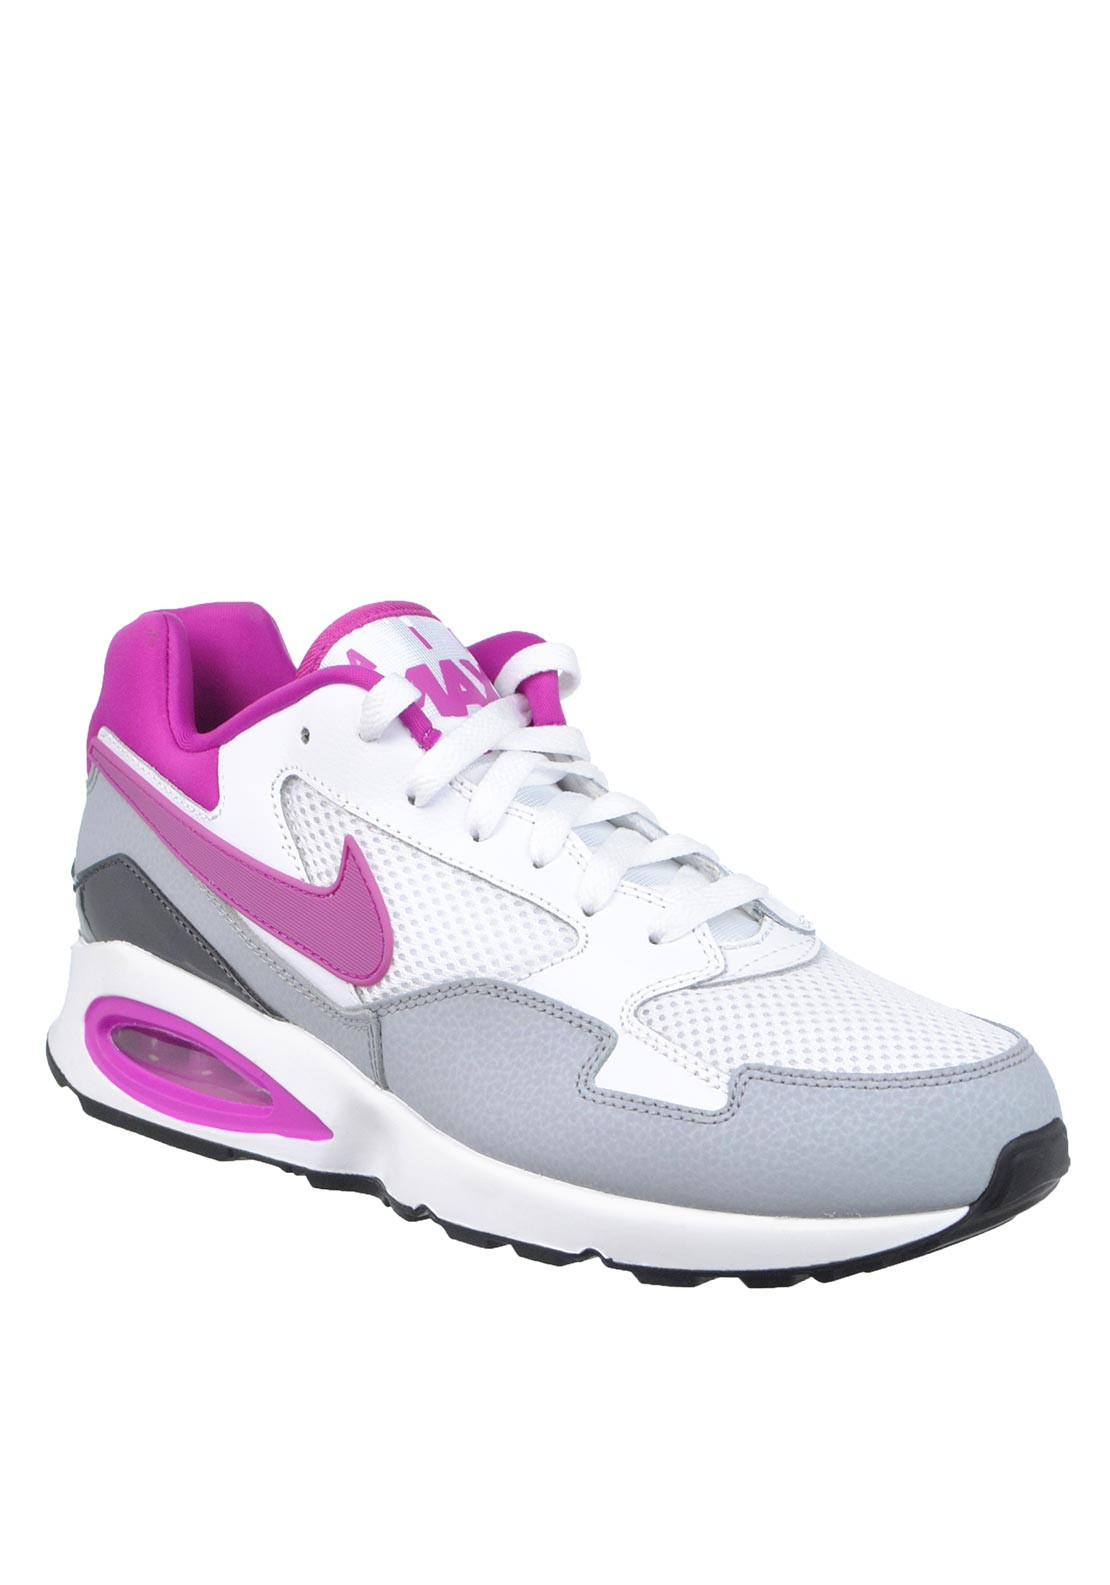 Nike Womens Air Max ST Trainer, White and Purple